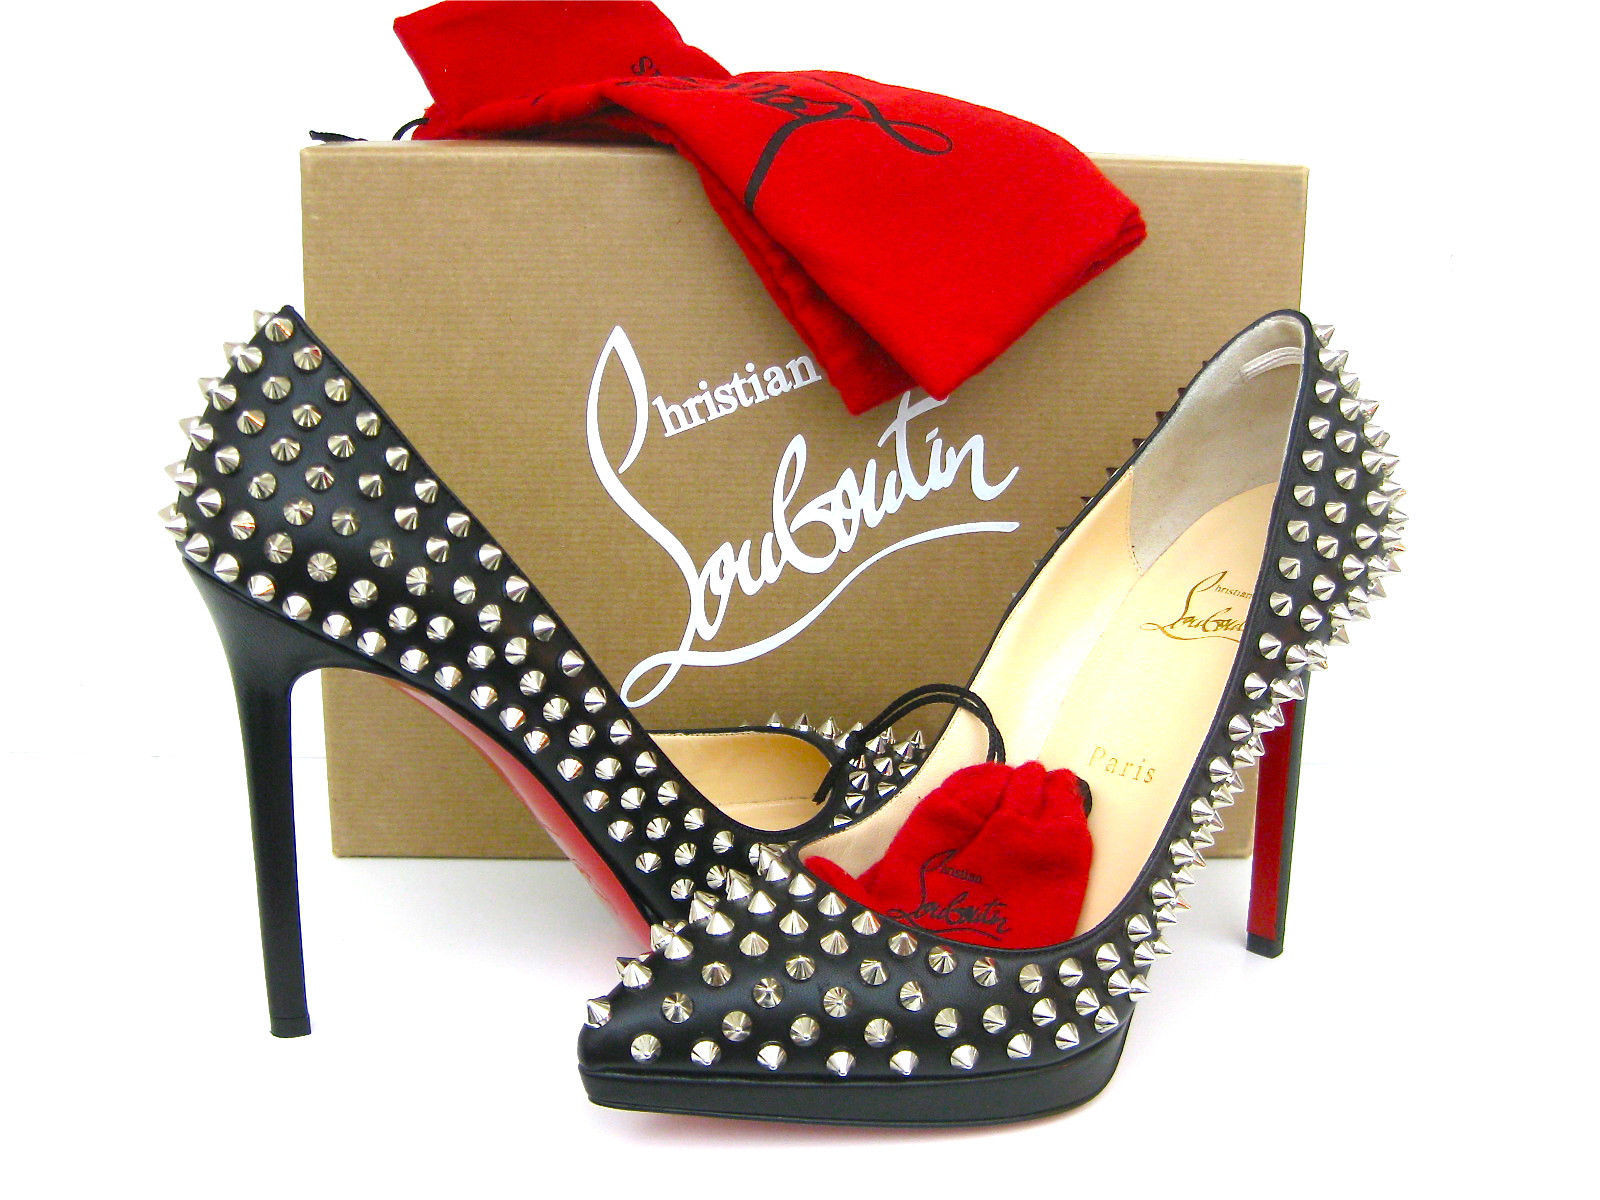 f8a4c49d2af Christian Louboutin Shoes Pigalle Plato and 50 similar items